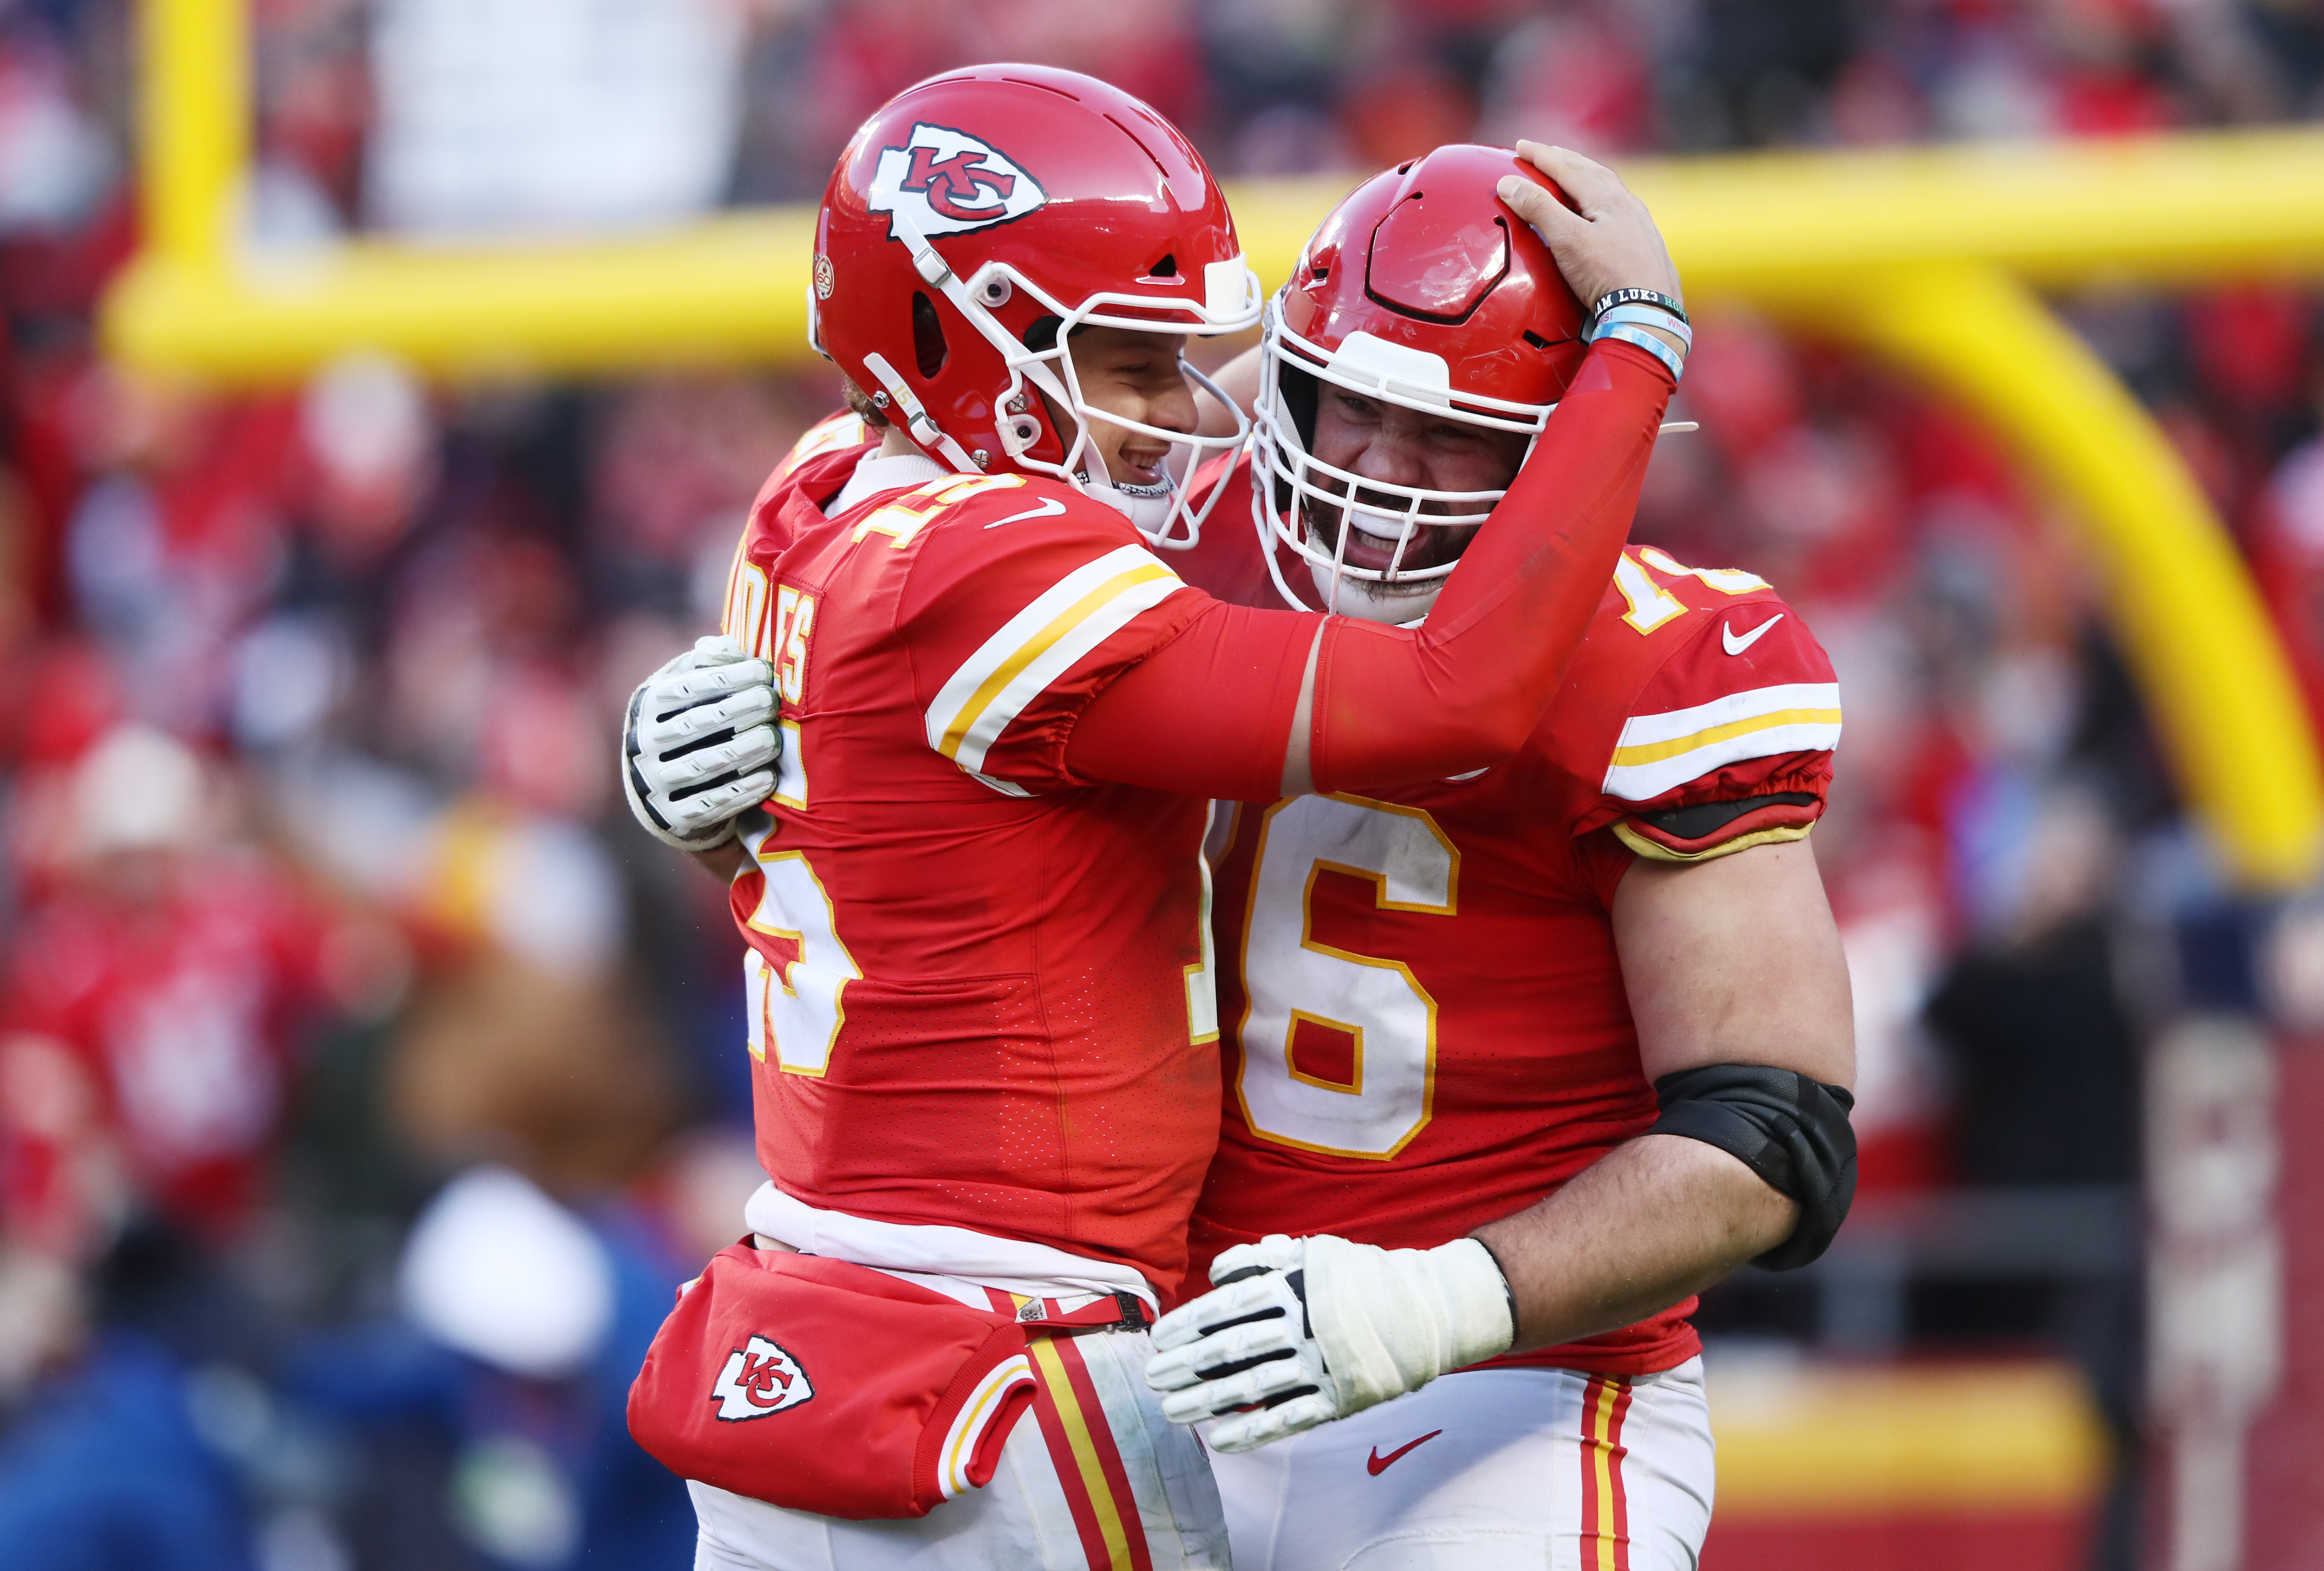 Patrick Mahomes of the Kansas City Chiefs reacts after a touchdown in the fourth quarter against the Tennessee Titans in the AFC Championship Game at Arrowhead Stadium on January 19, 2020 in Kansas City, Missouri.